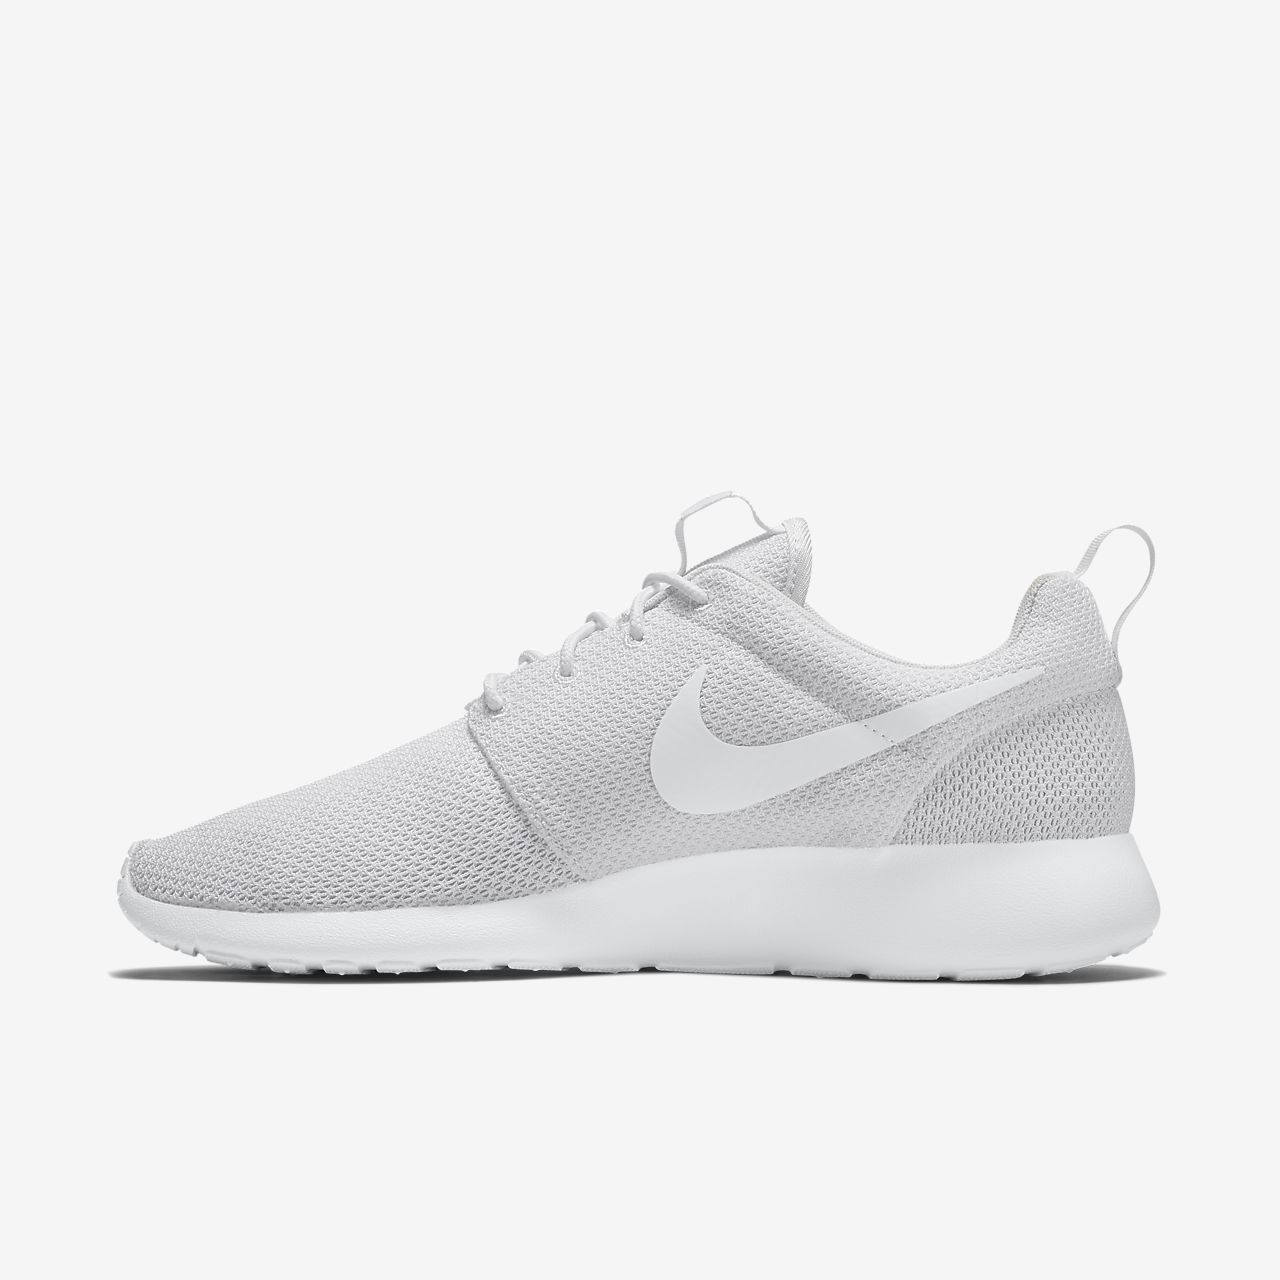 e9481c5bfc2a White Nike Shoes Mens   Up to 60% off - Buy Nike Shoes at ...